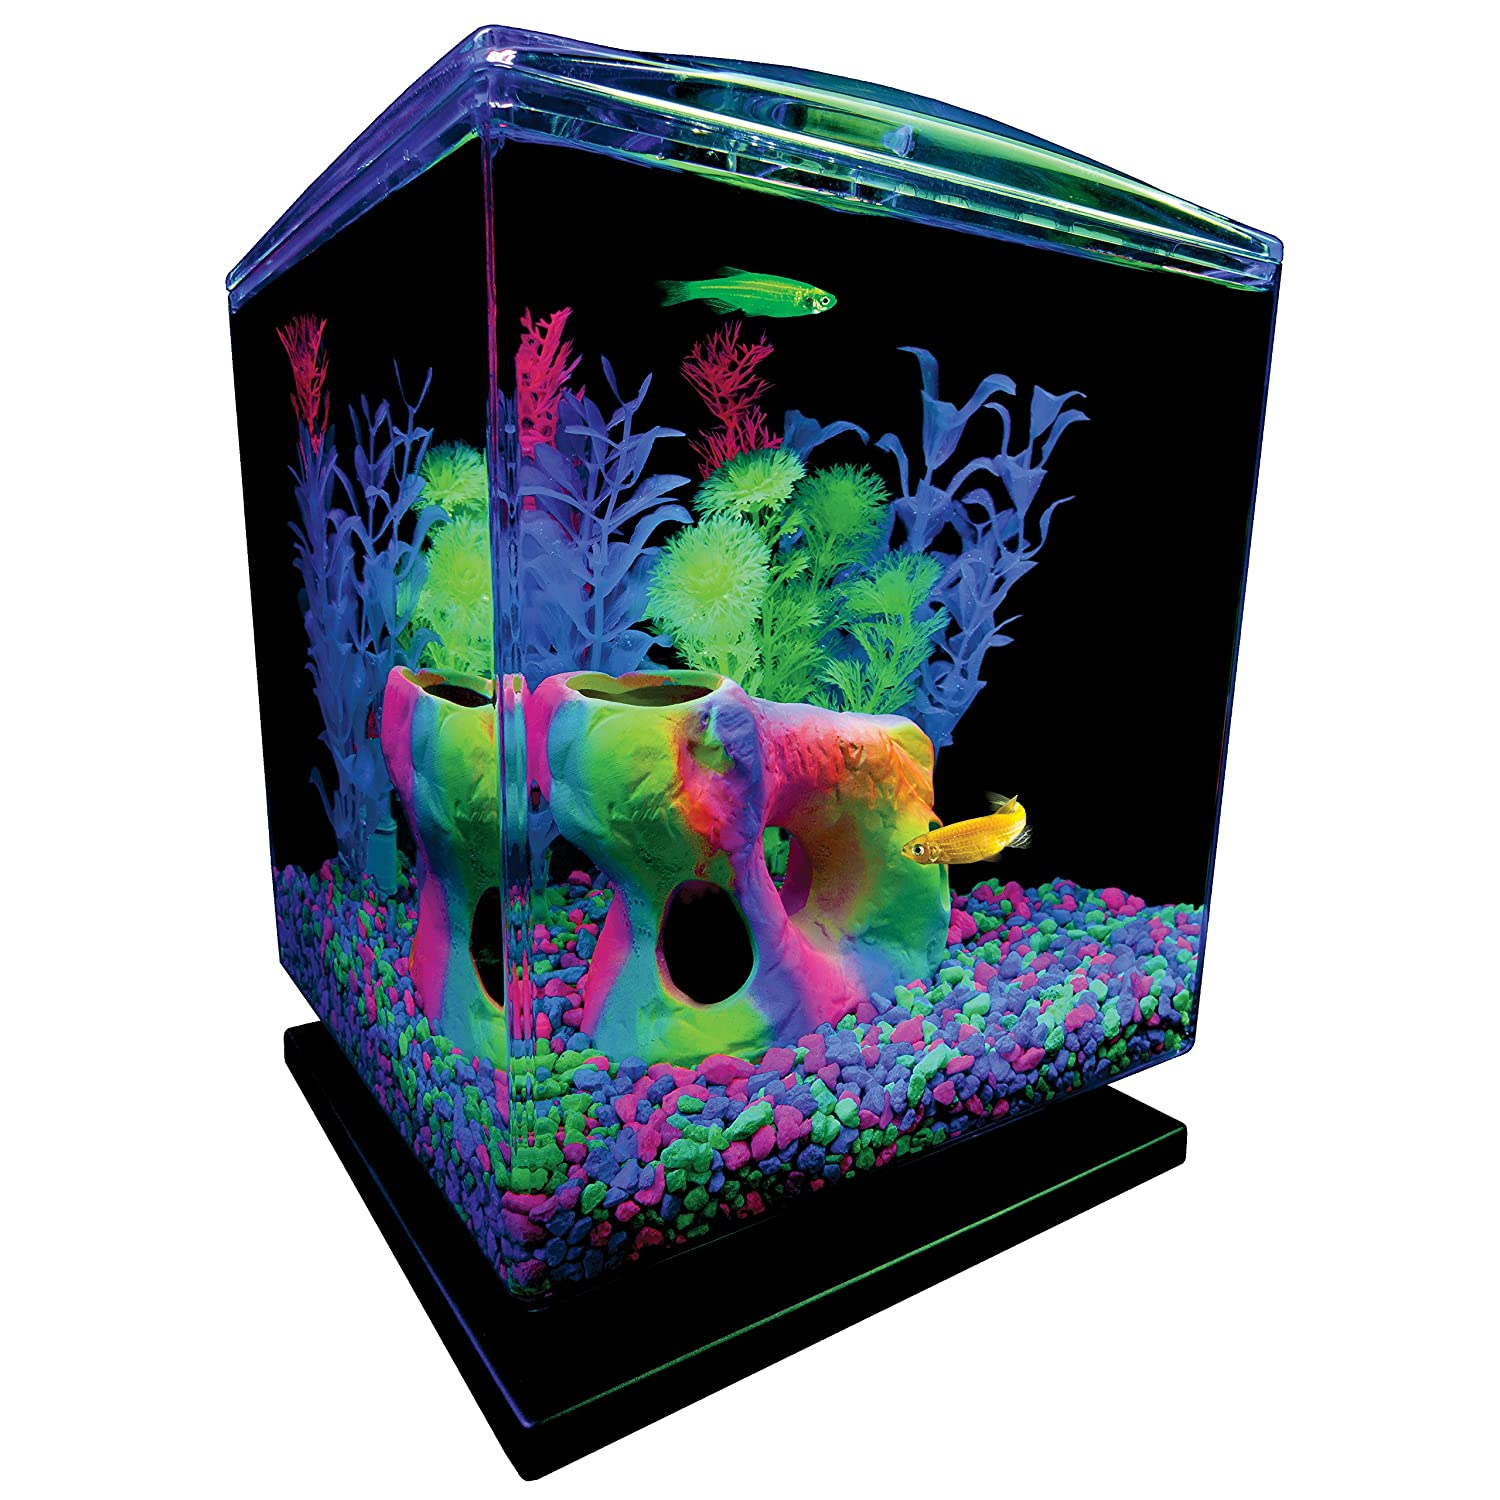 Glow fish tank images galleries with for 55 gallon fish tank petsmart